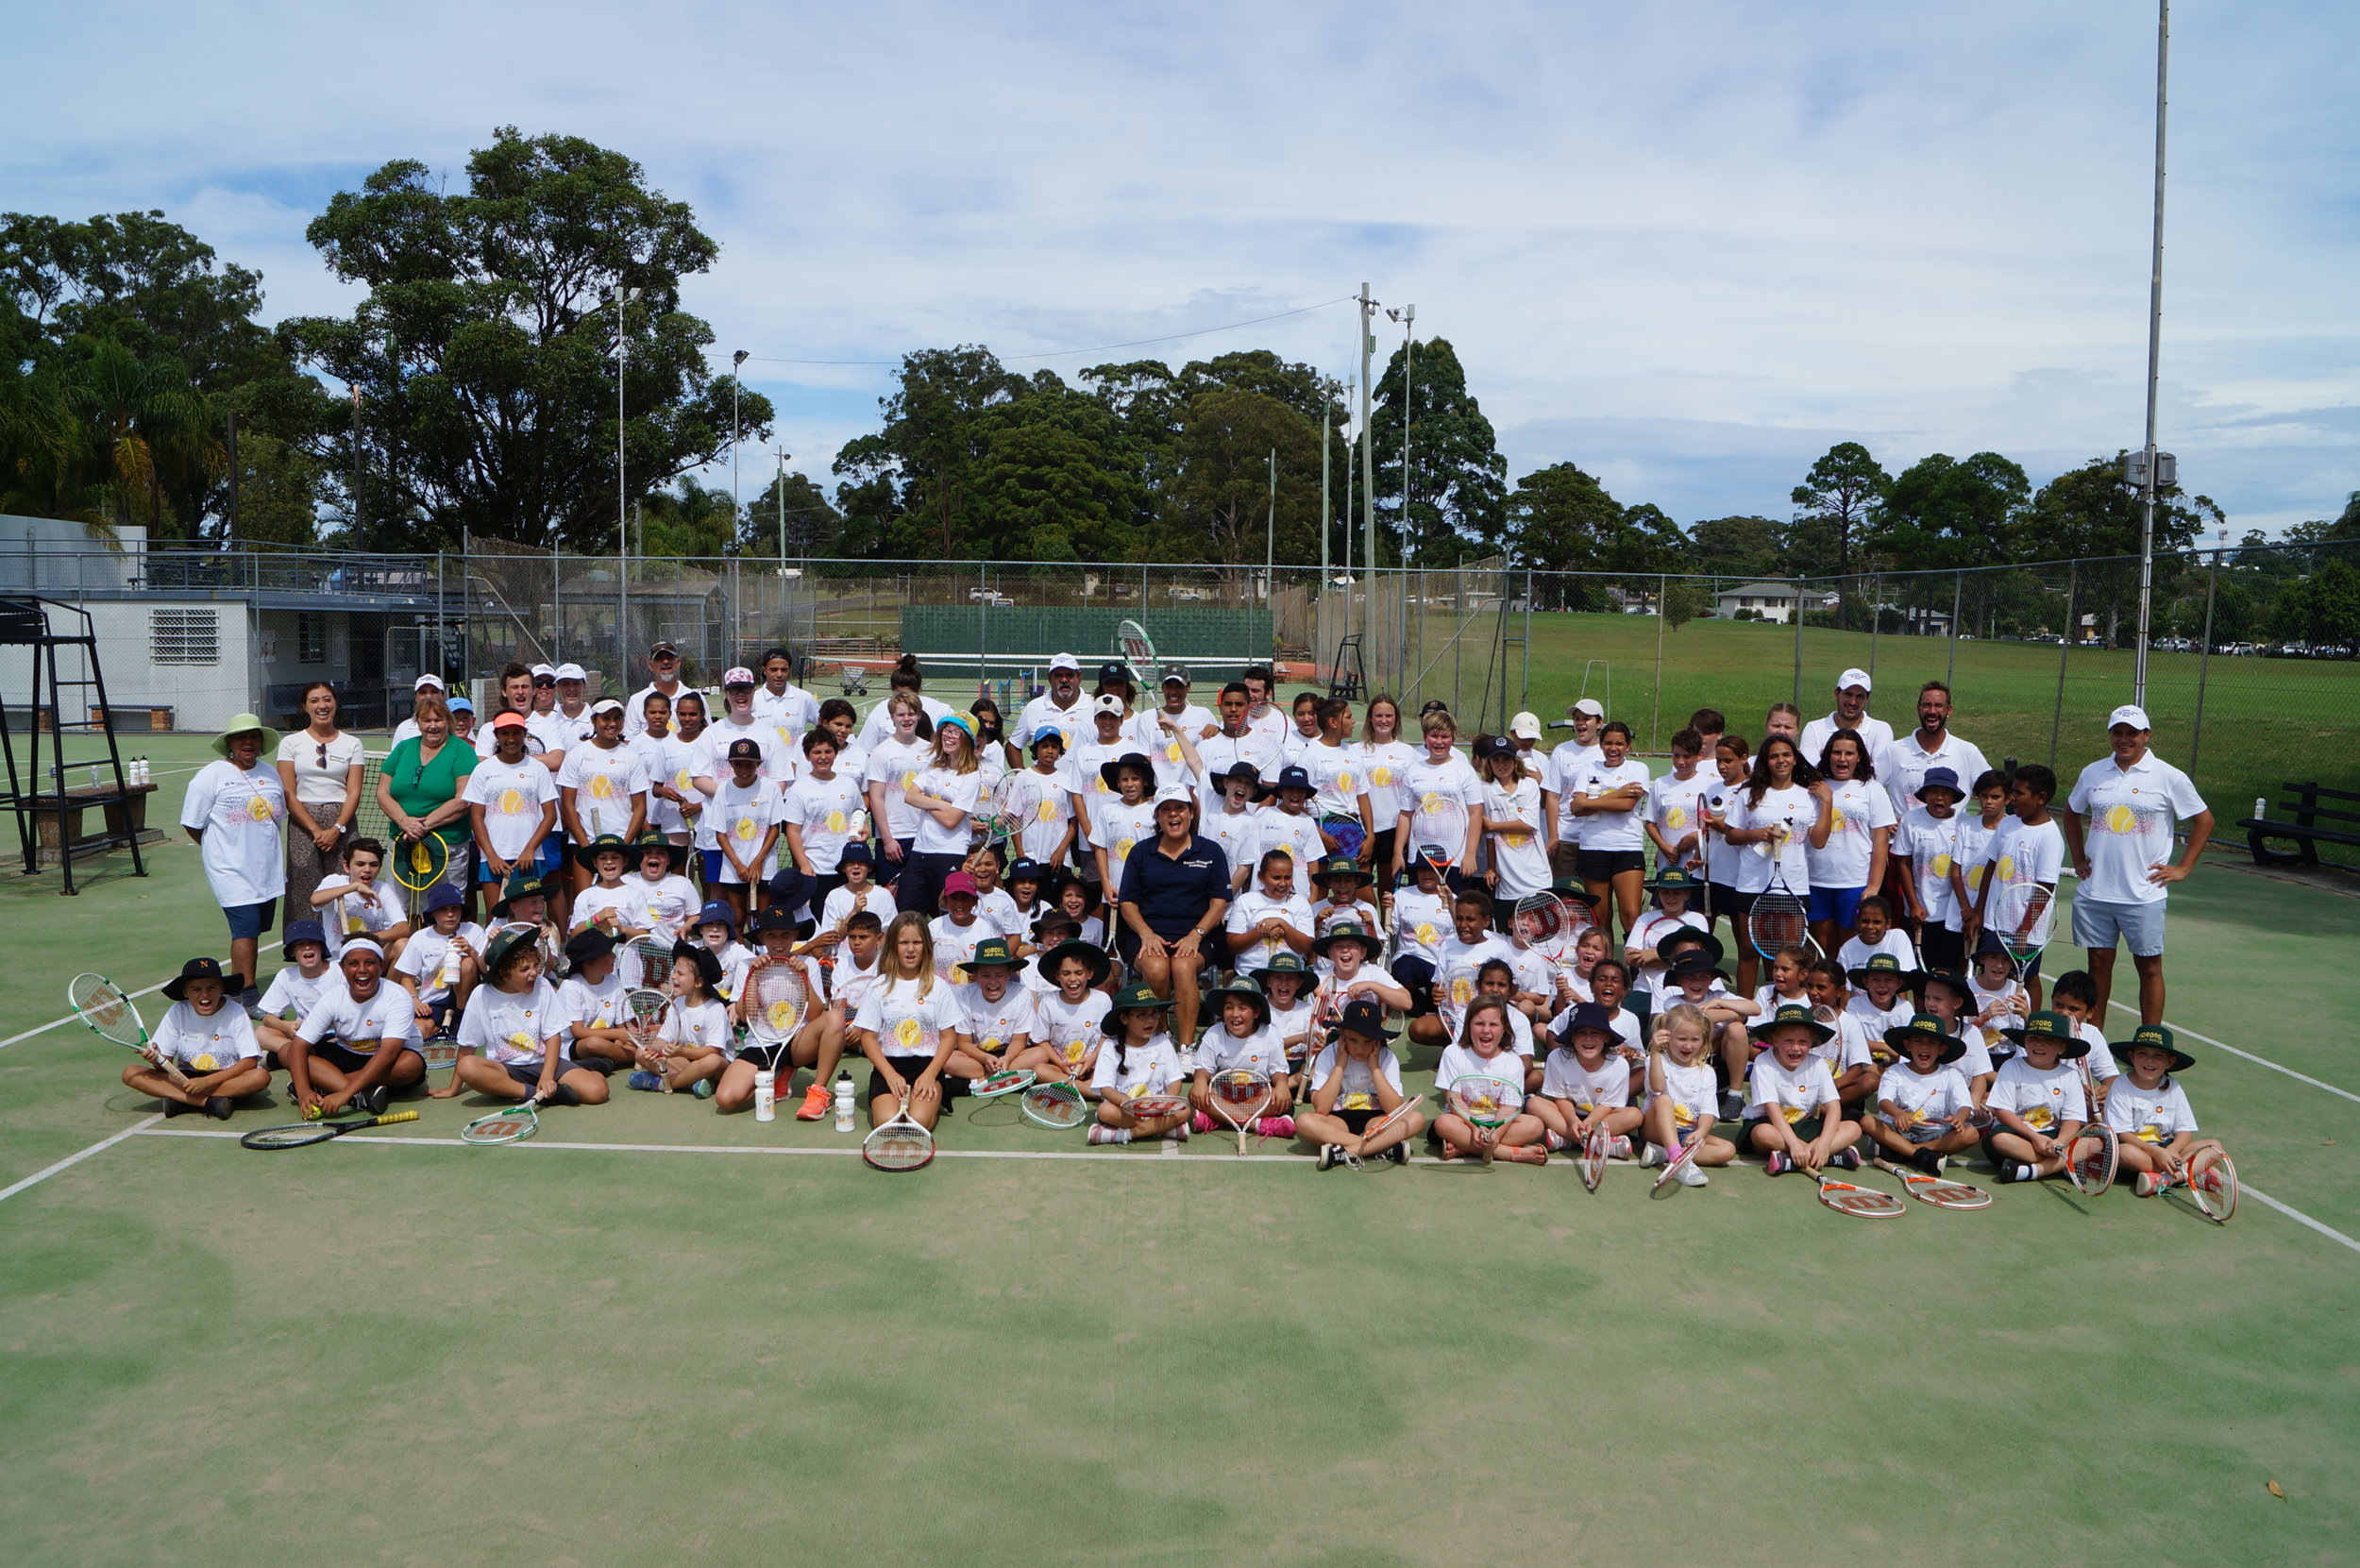 A family snap of another 100 + in Coffs – Thank you Jarred Kelly and TieBreak Tennis Academy  for hosting us at the Coffs Harbour Tennis Club